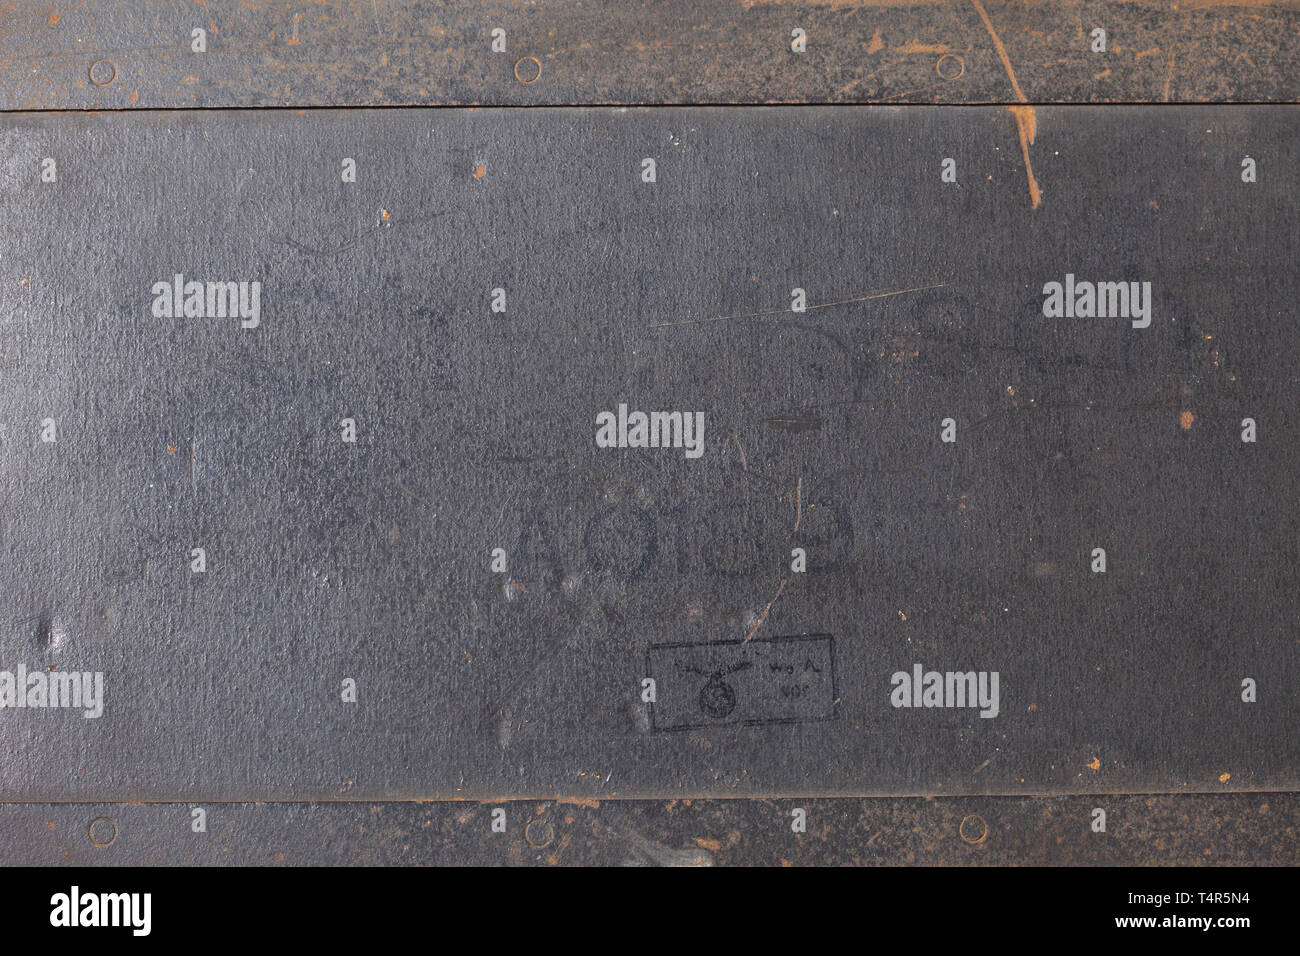 """A German """"Enigma I"""" cipher machine, 1944 army issue, in the original carrying case Appliance number """"A 01891"""", manufactured 20th century, Editorial-Use-Only Stock Photo"""